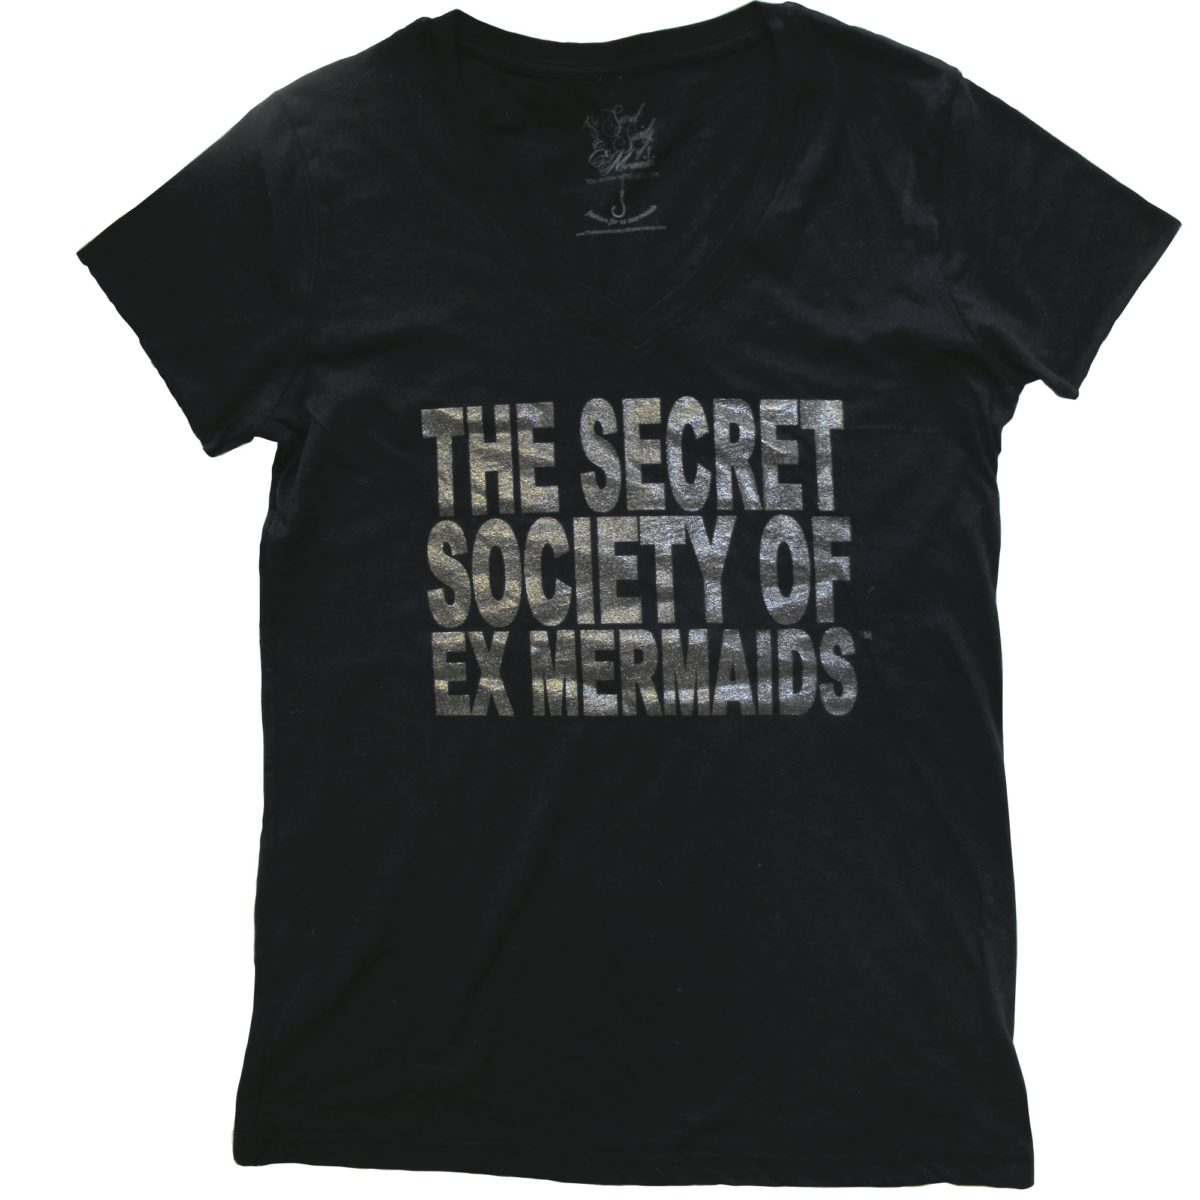 Ex Mermaid Society Tee- Black shimmer on black